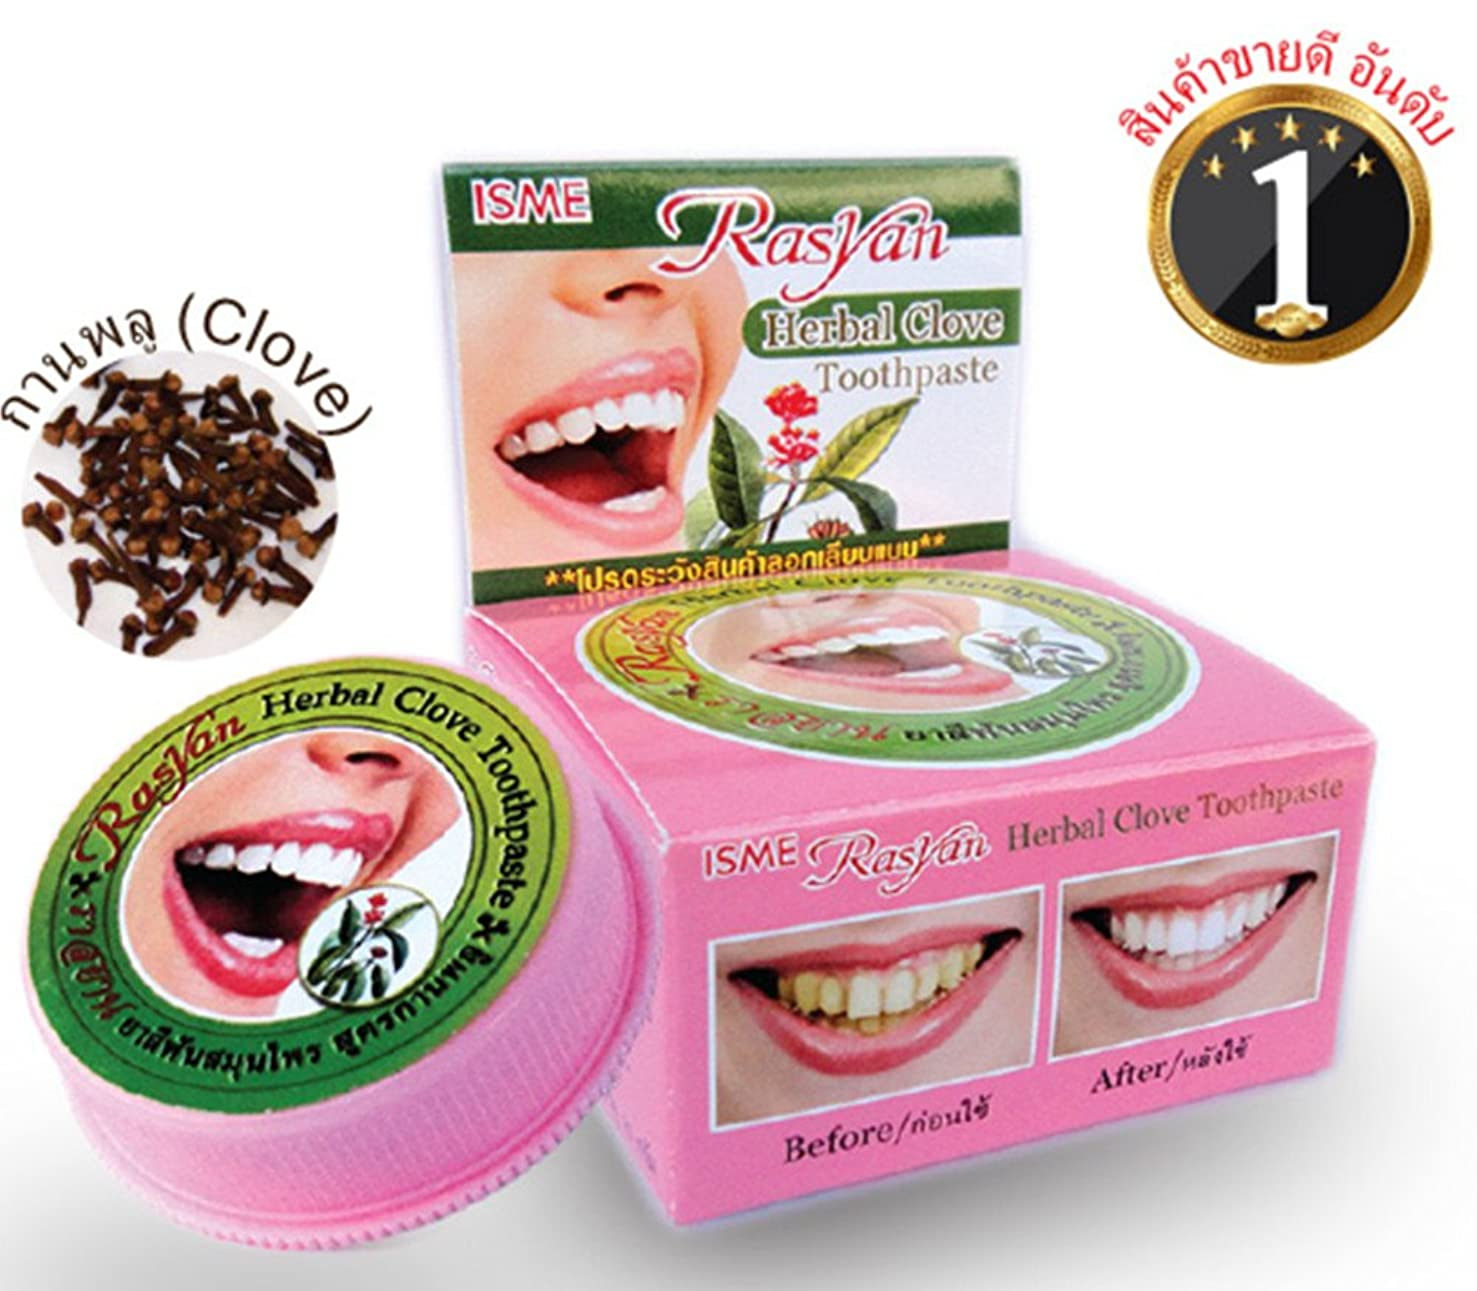 大腿ポルトガル語公練り歯磨き ハーブ Thai Herbal Rasyan Herbal Clove Toothpaste (5 Gram Size) 2 Pcs.